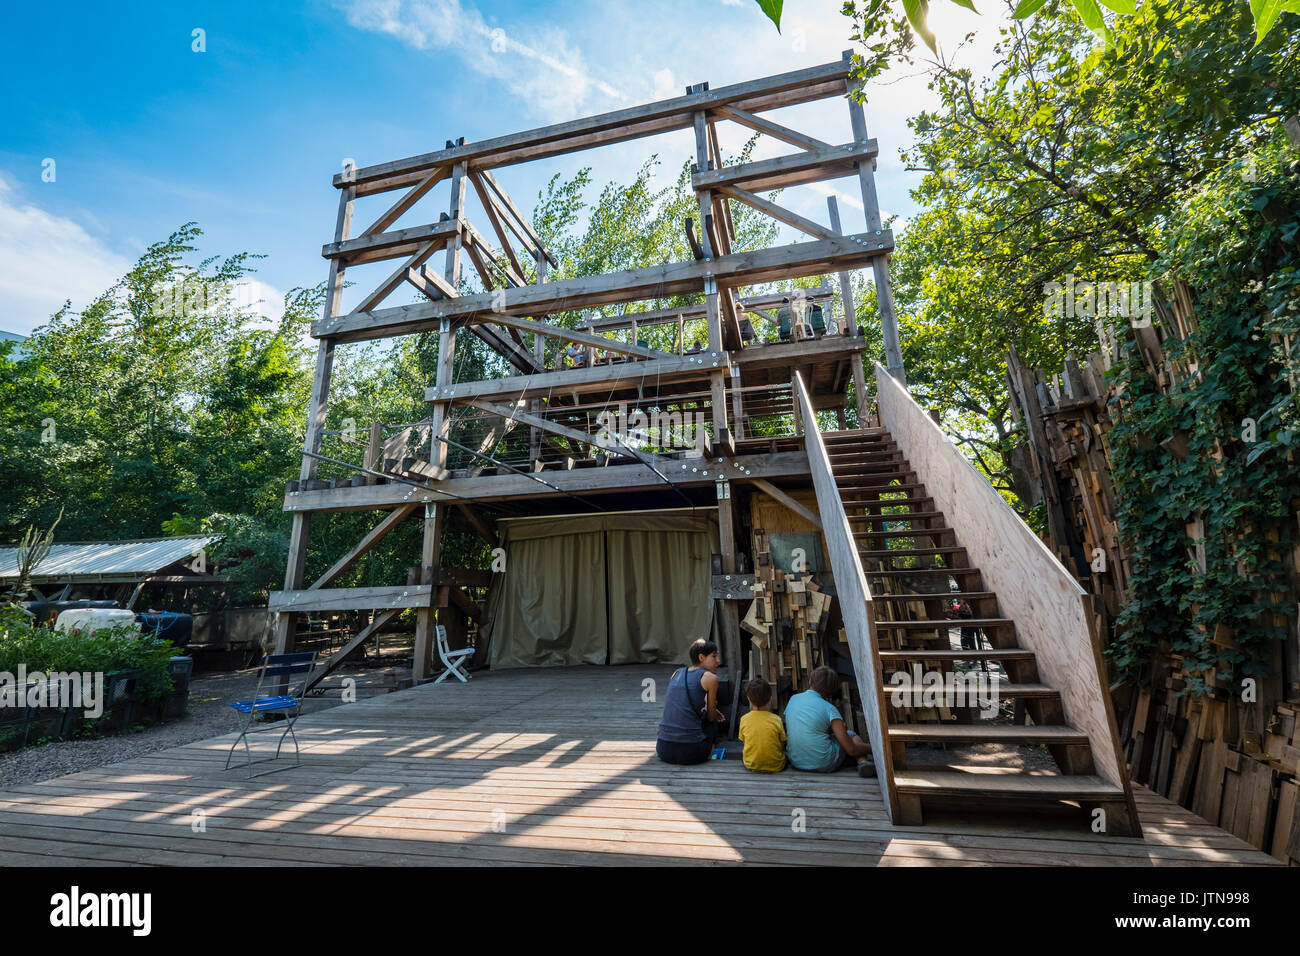 View Of Die Laube Or Arbor A Wooden Structure With Platforms At